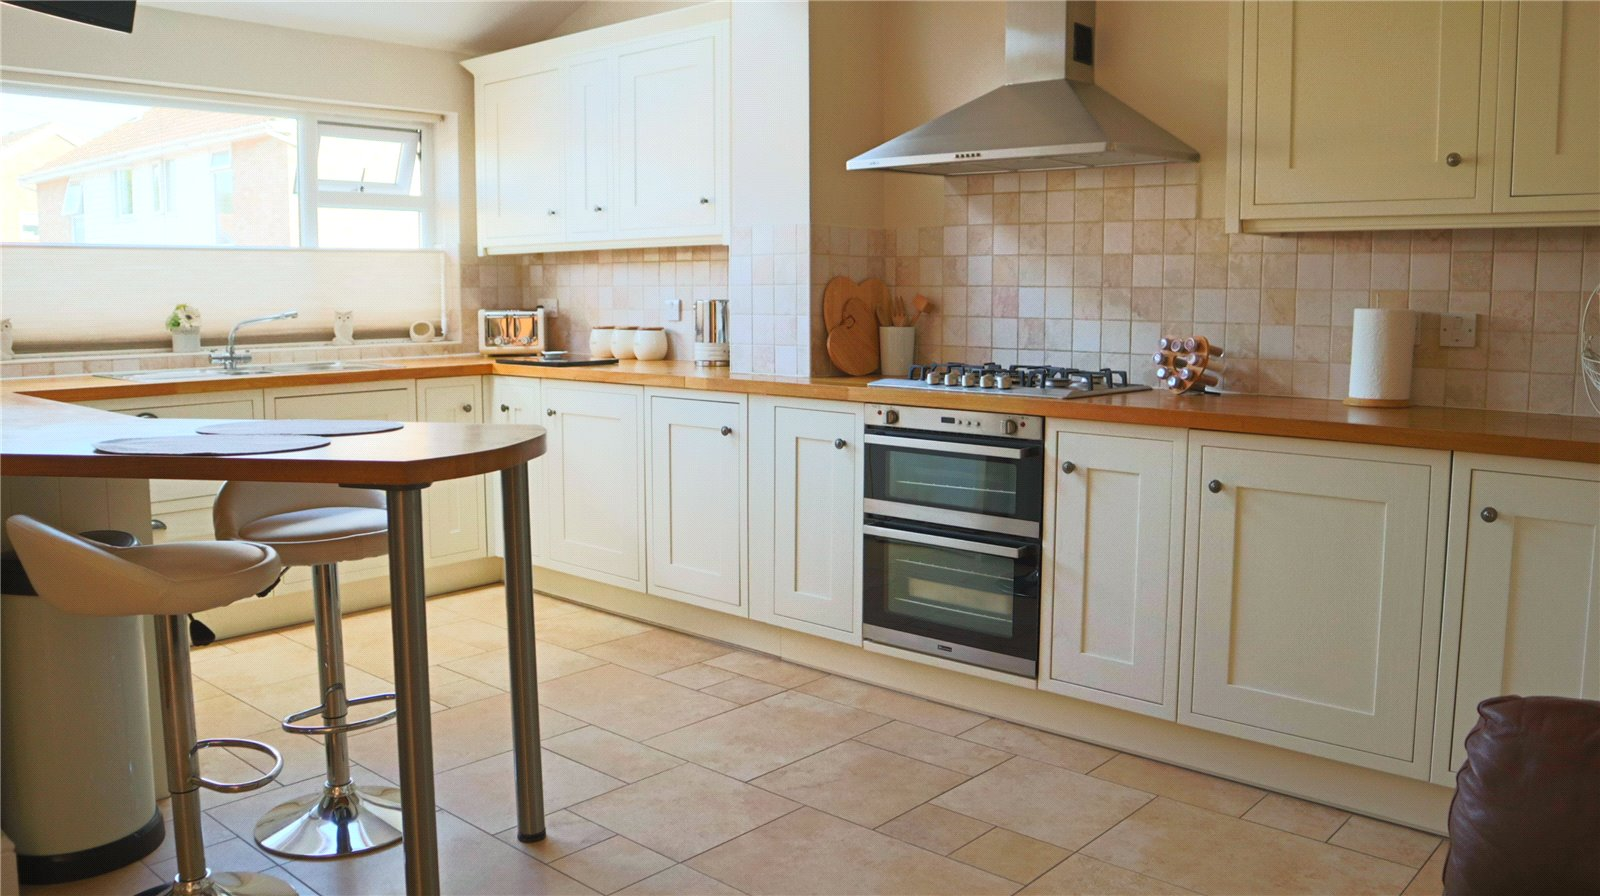 3 bed house for sale in Hathaway Close, Eaton Socon  - Property Image 2